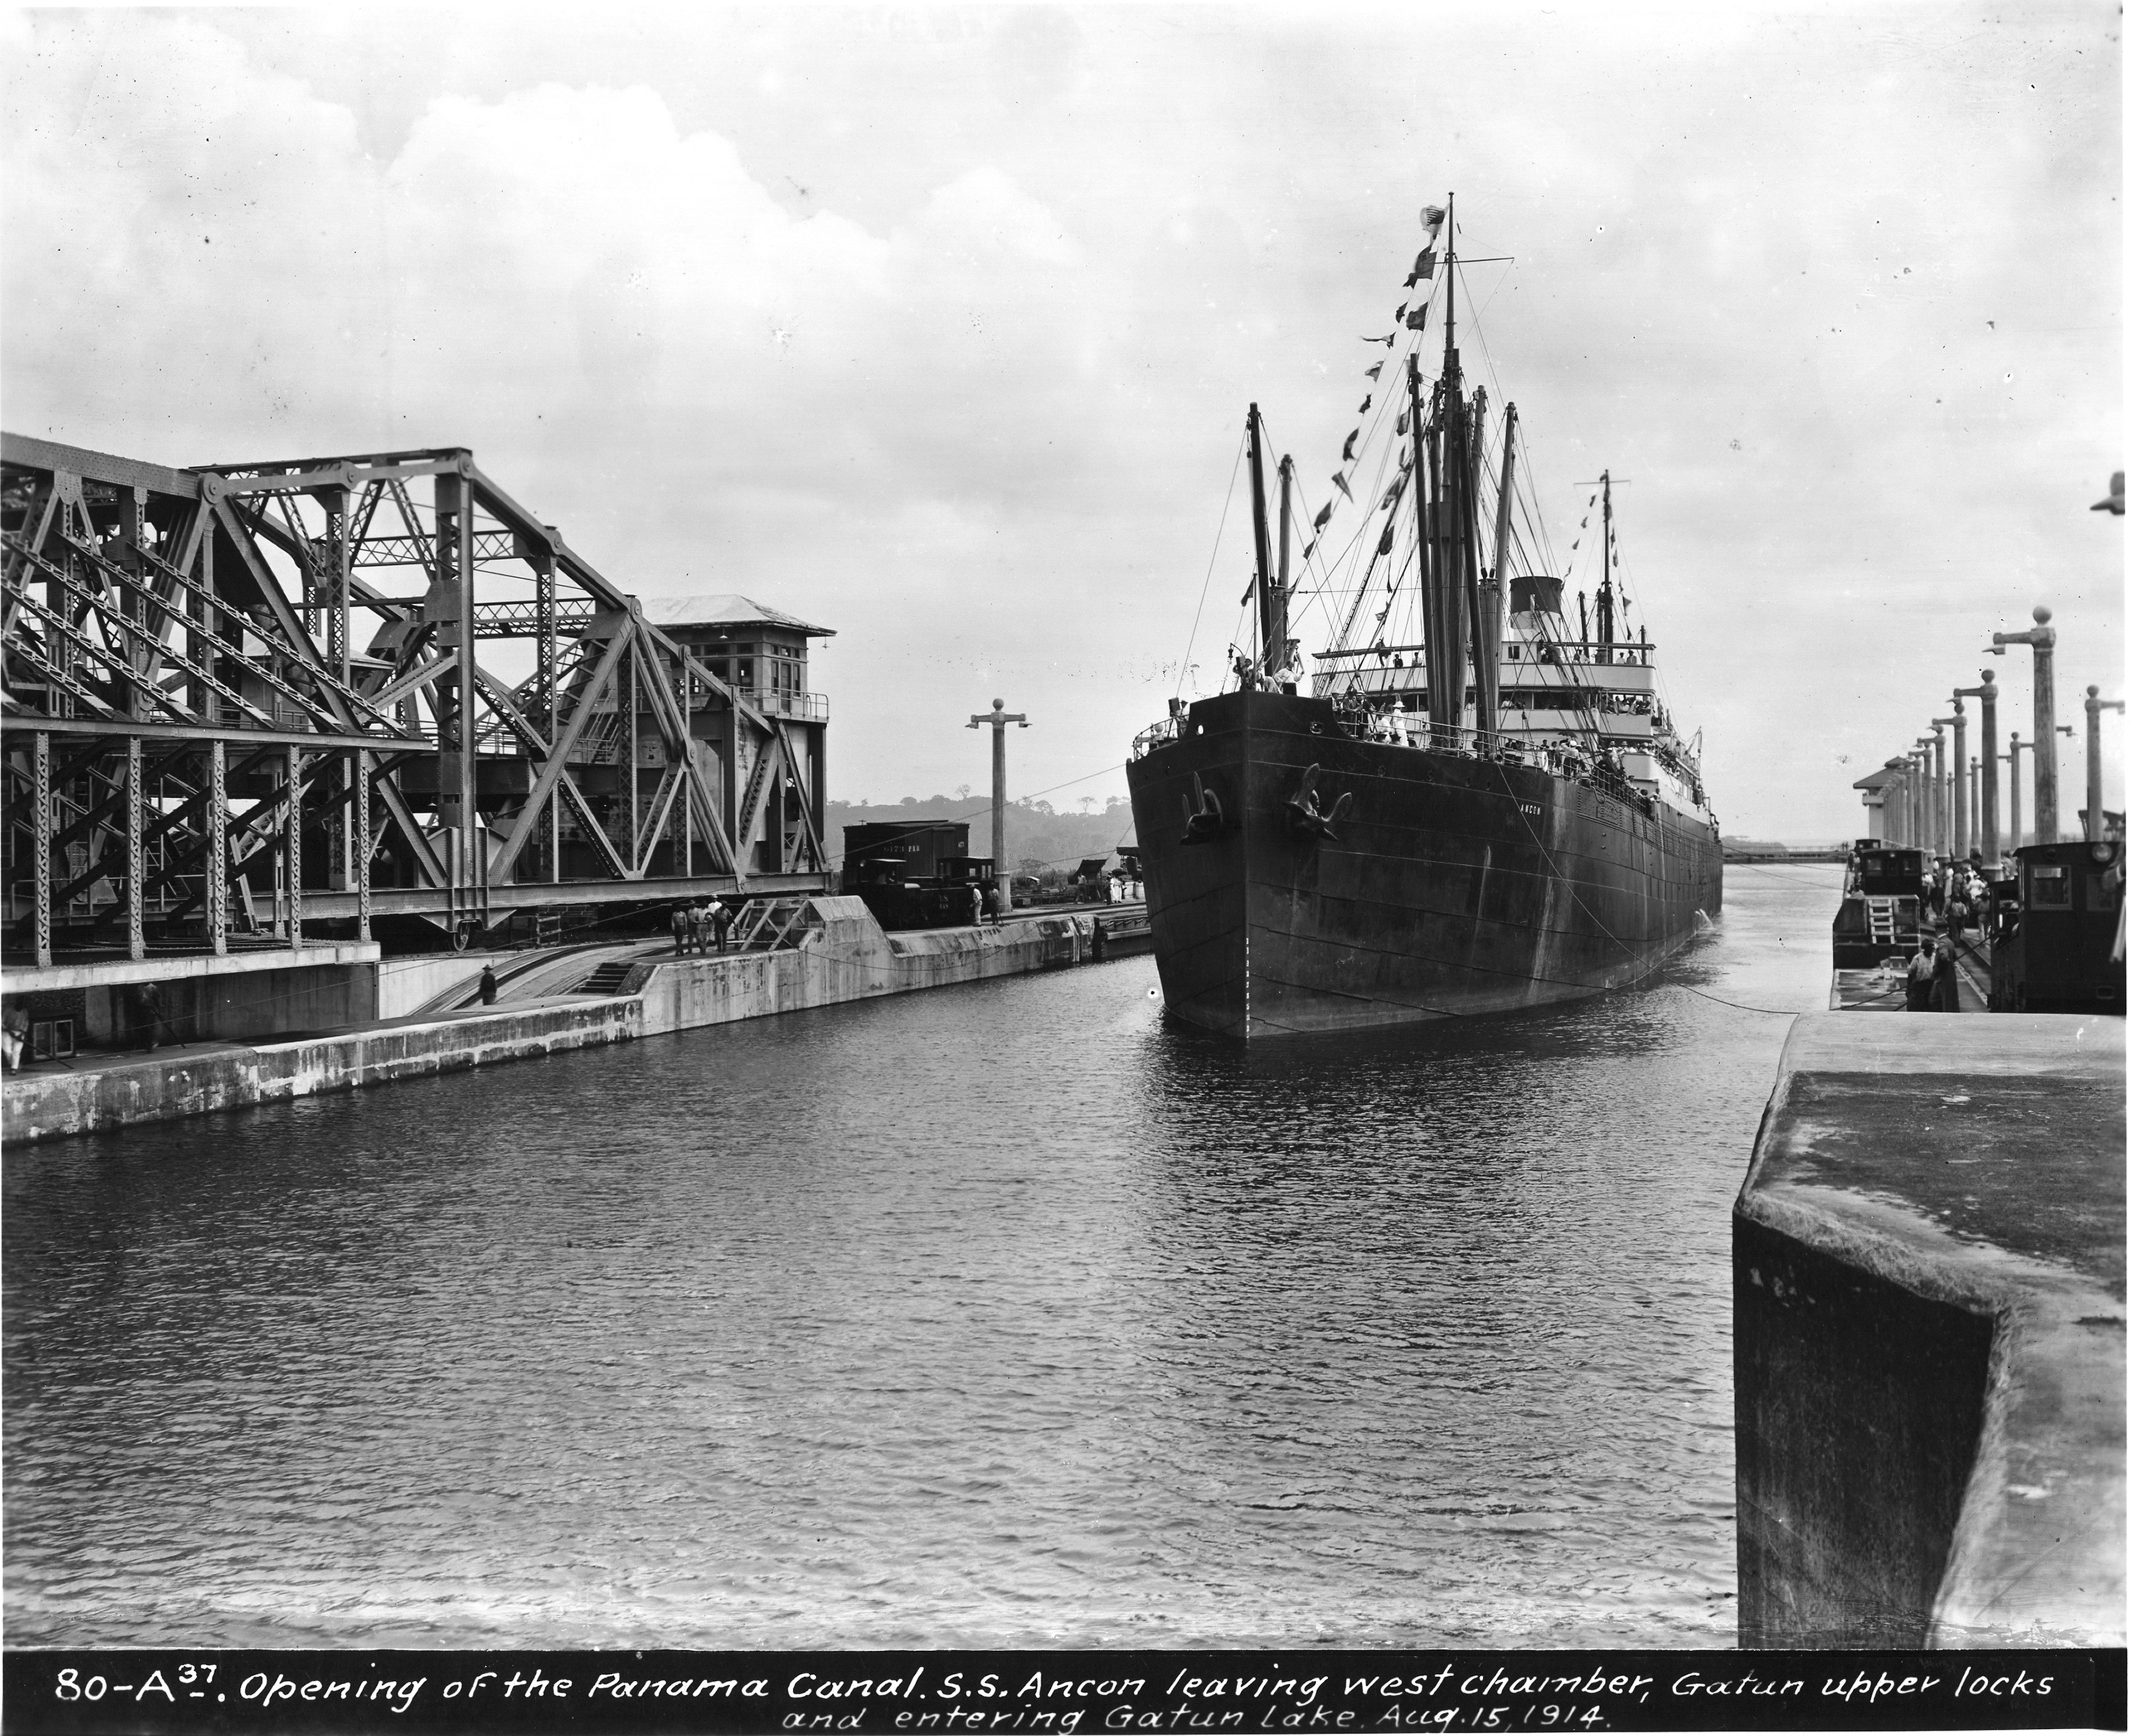 The Panama Canal opened on Aug. 15, 1914. The first ship through was the U.S. steamer the SS Ancon. It's shown here leaving the west chamber of the upper Gatun locks and entering Gatun Lake. Photo by PhotoQuest/Getty Images